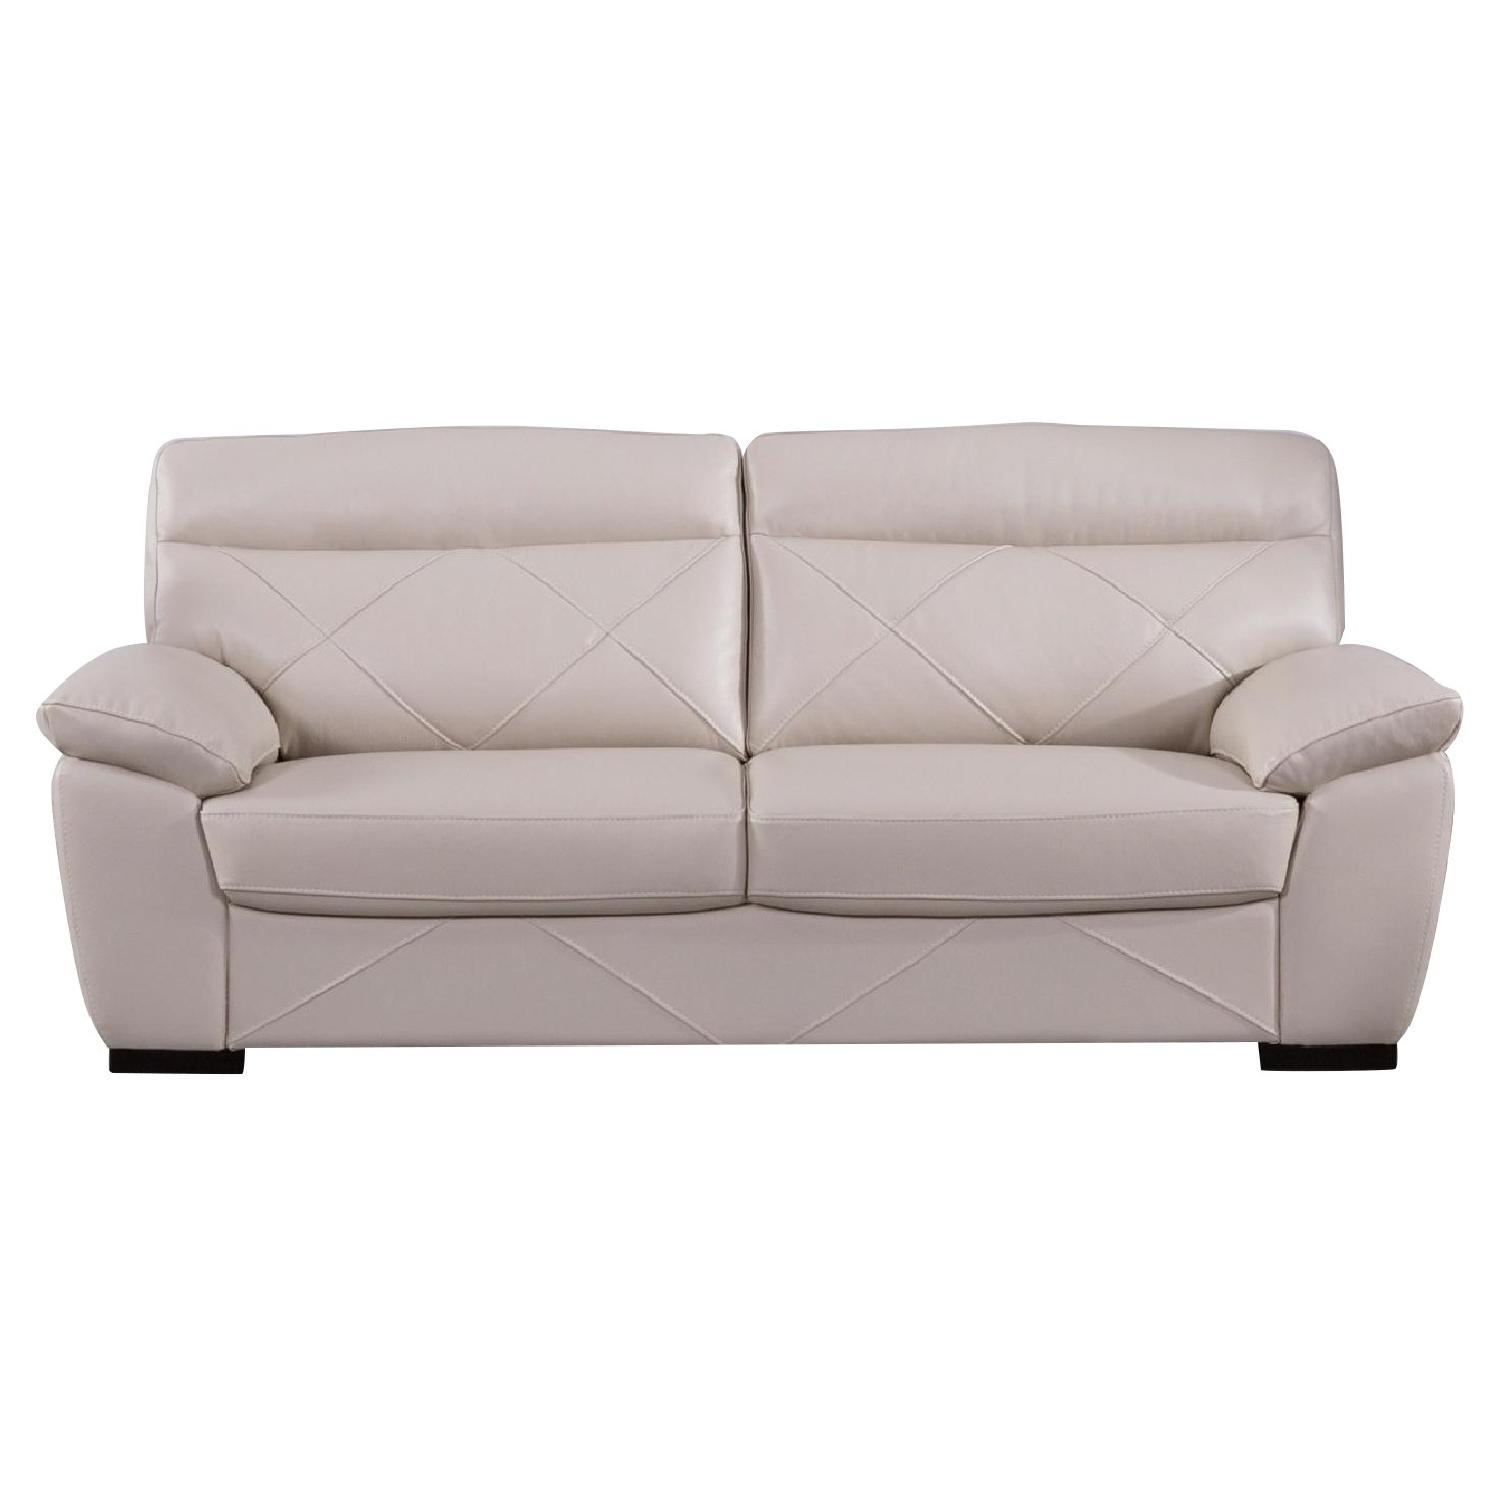 Modern Style Sofa in Taupe Color Top Grain Leather w/ Padded Headrests & Tufted Button Sides